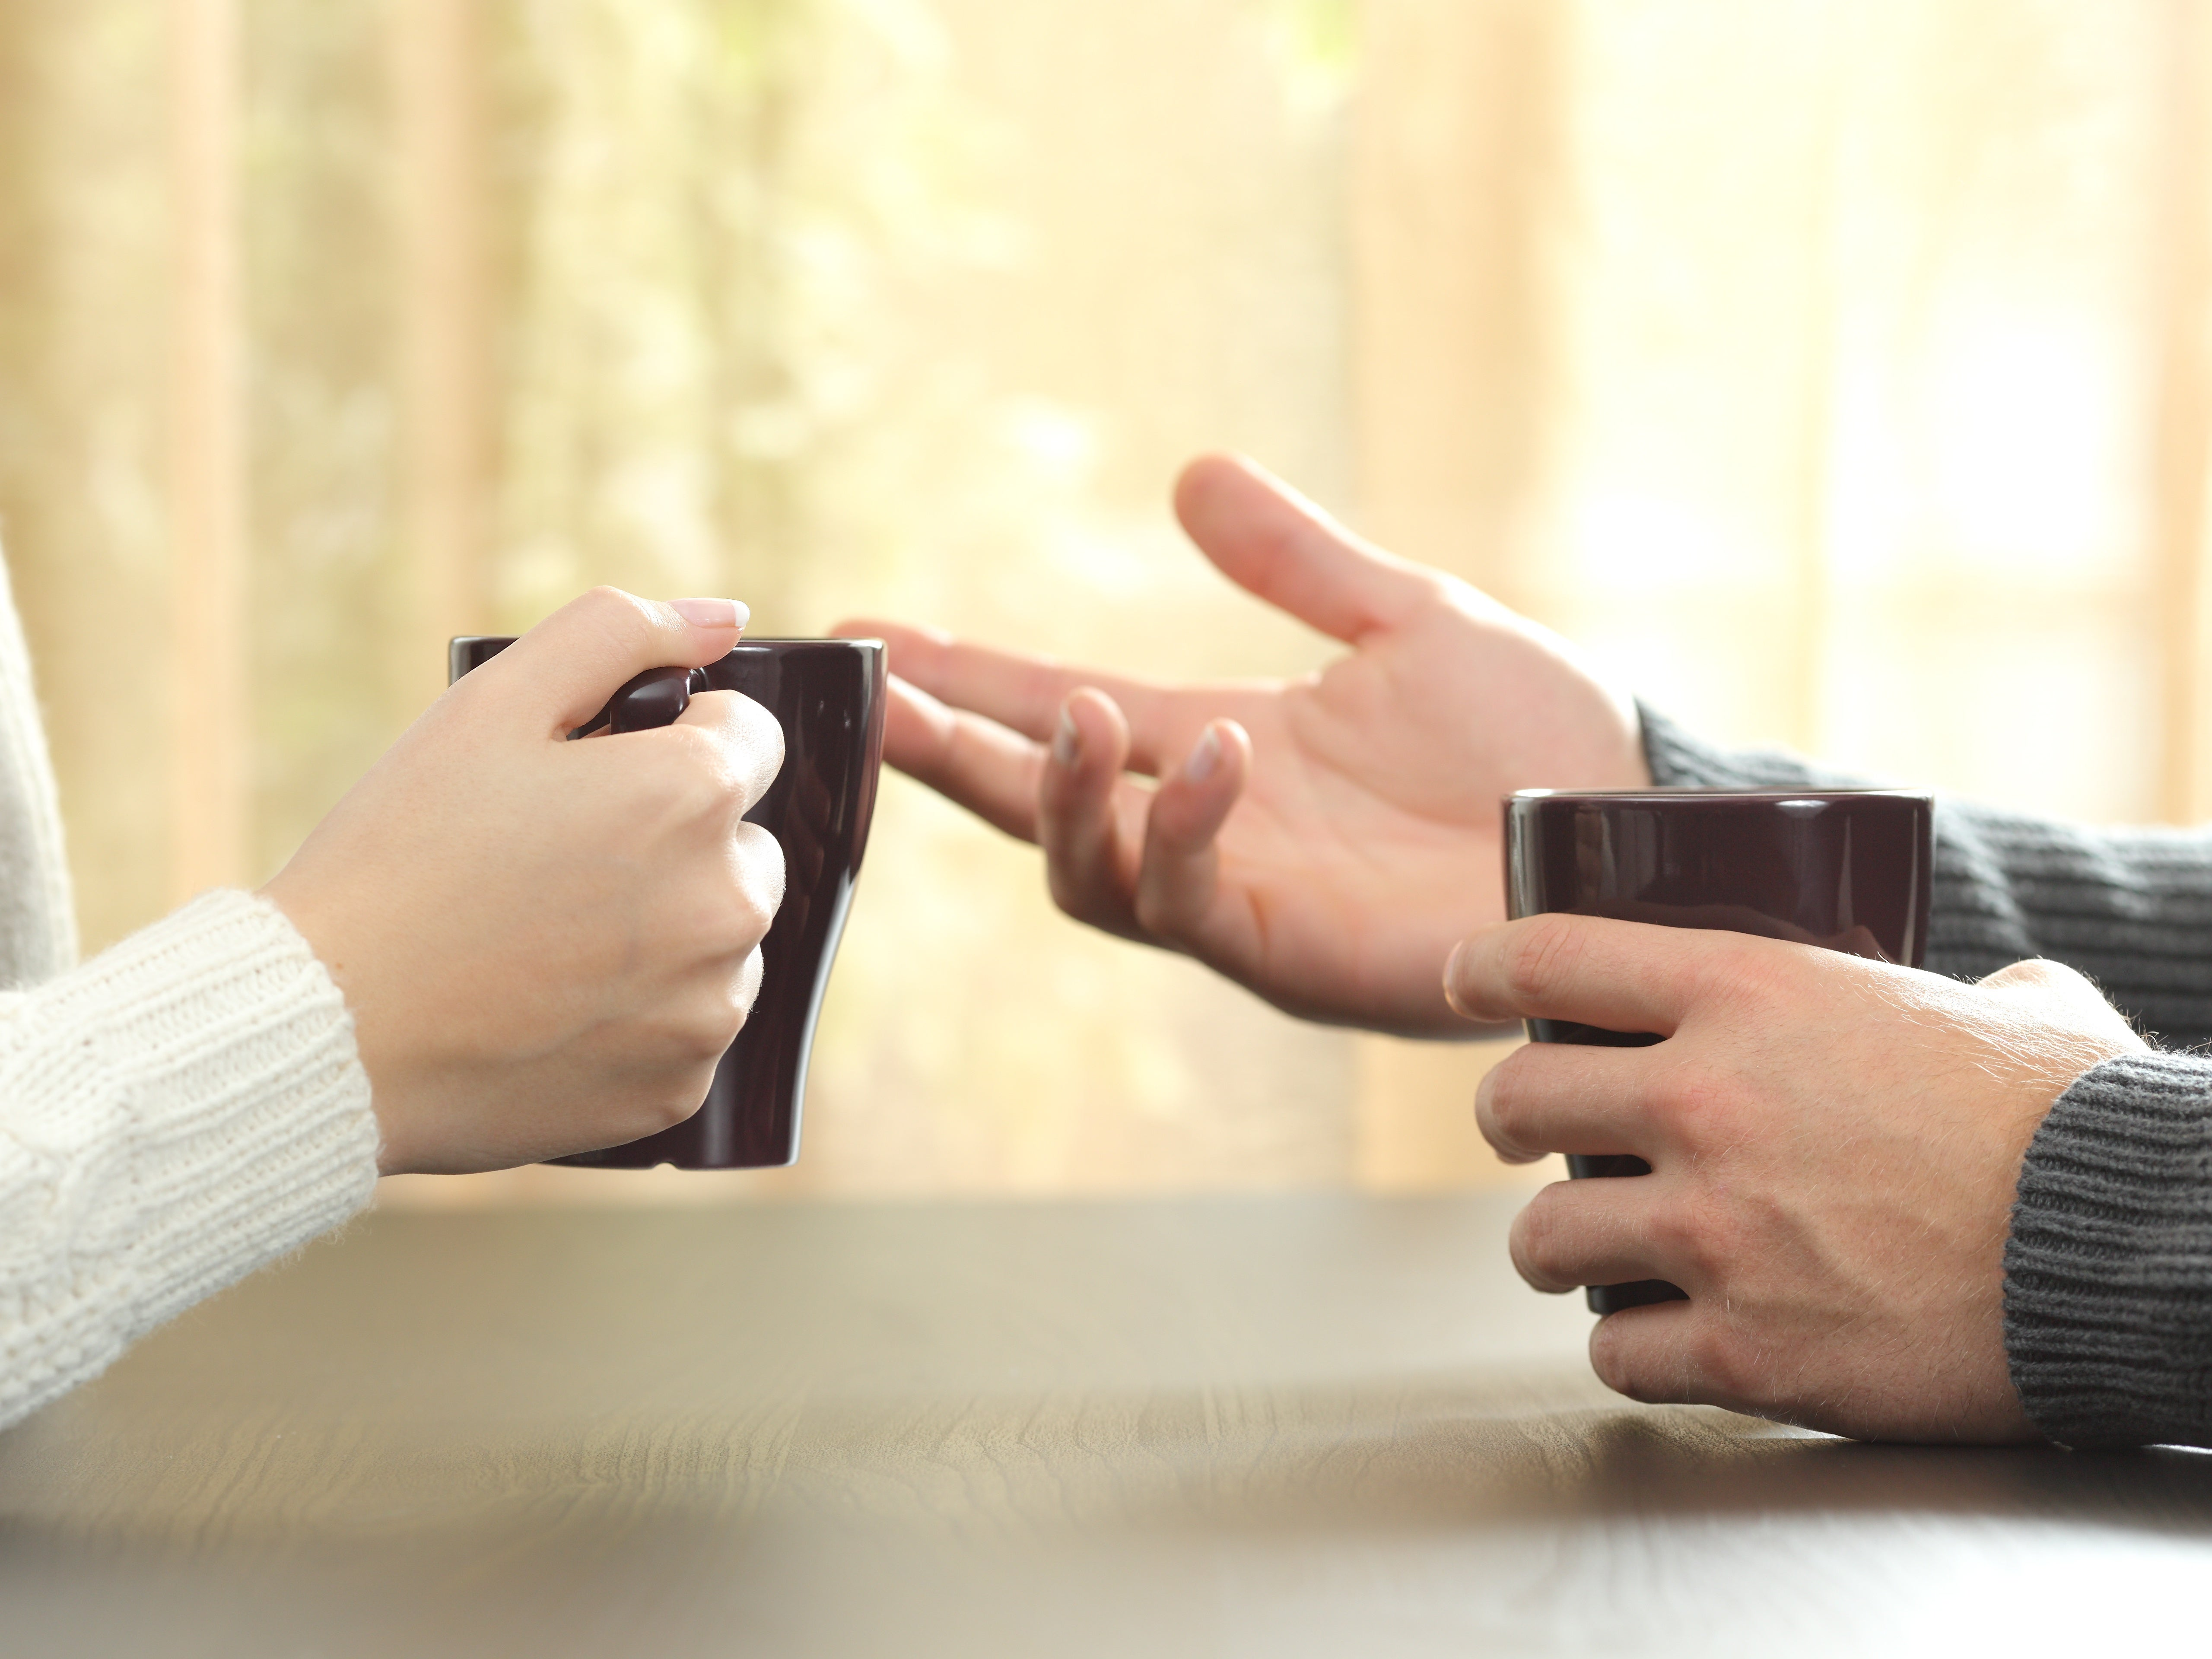 Employee sharing investigation details with their partner not a valid reason for dismissal